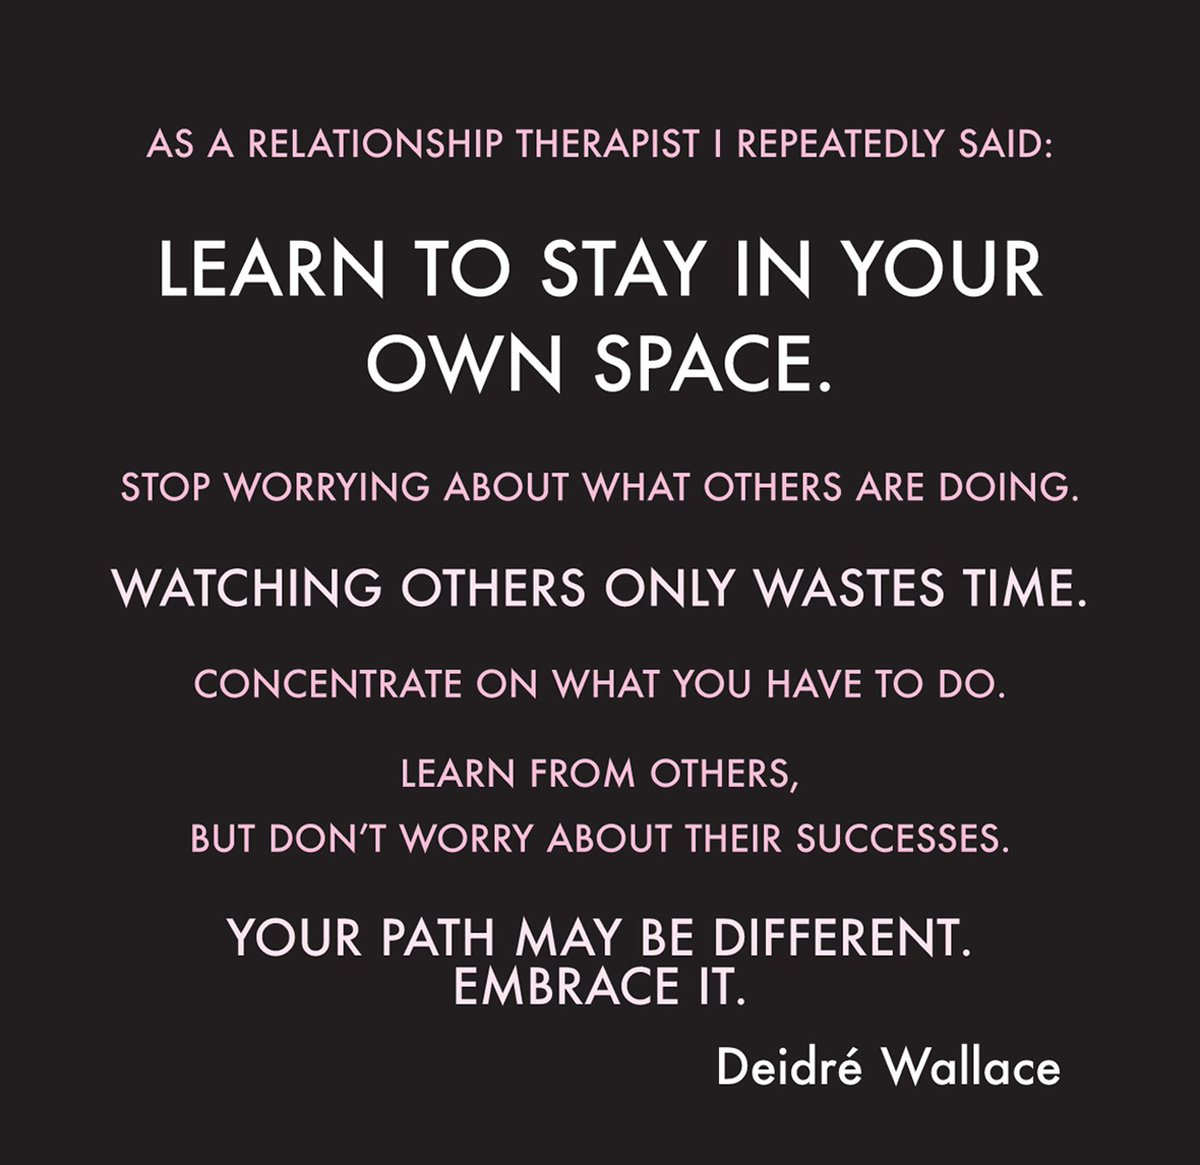 My relationship observations: Learn to stay in your own space: https:/...